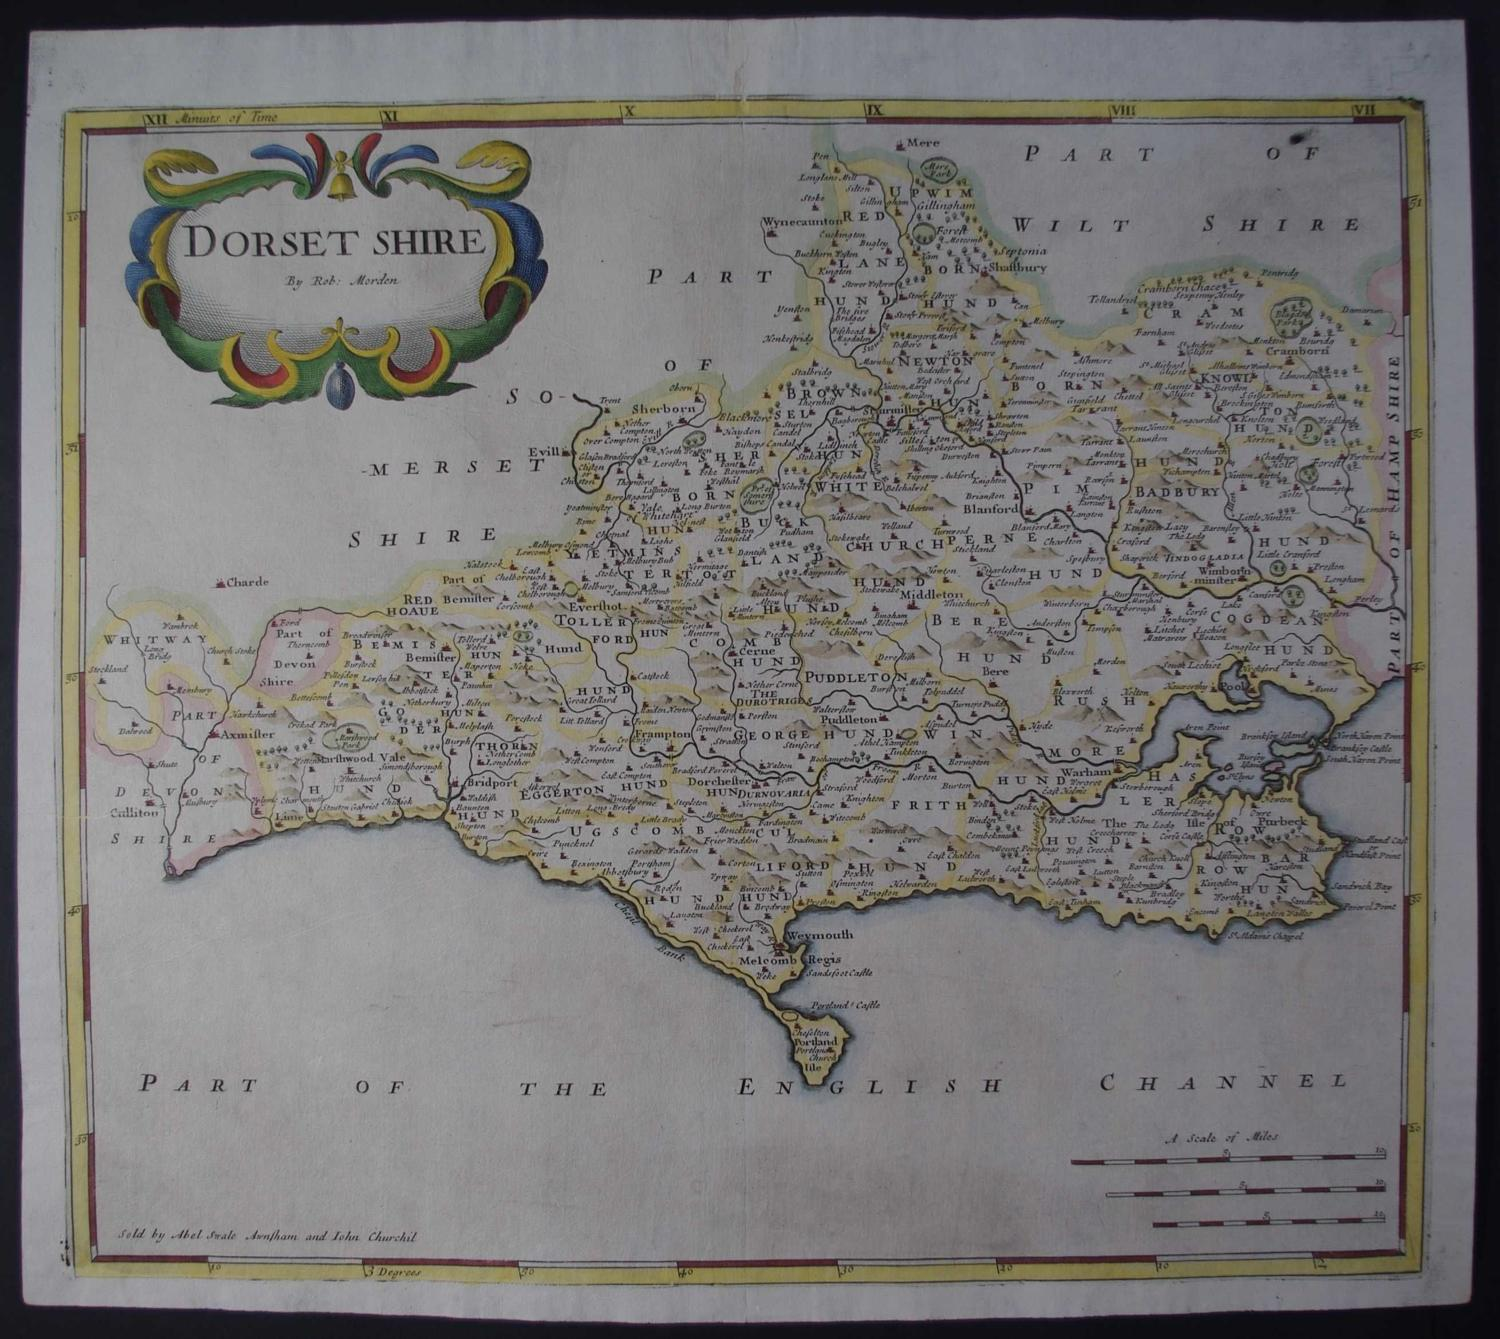 Dorset Shire (Dorset) 1st edition 1695 by Robert Morden